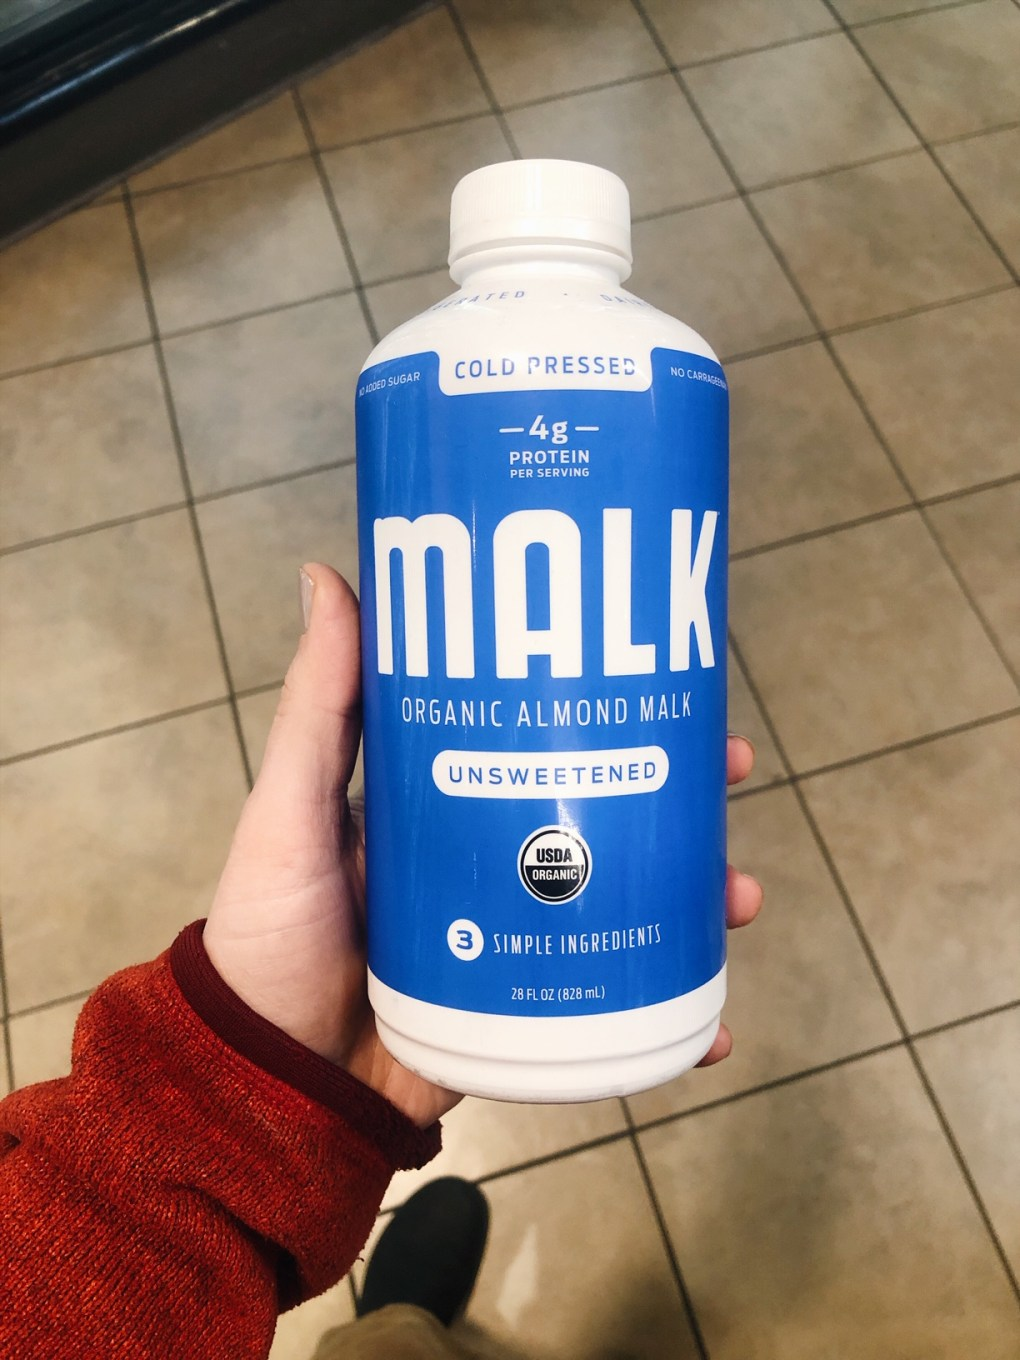 Holding a bottle of malk organics almond milk in the grocery store